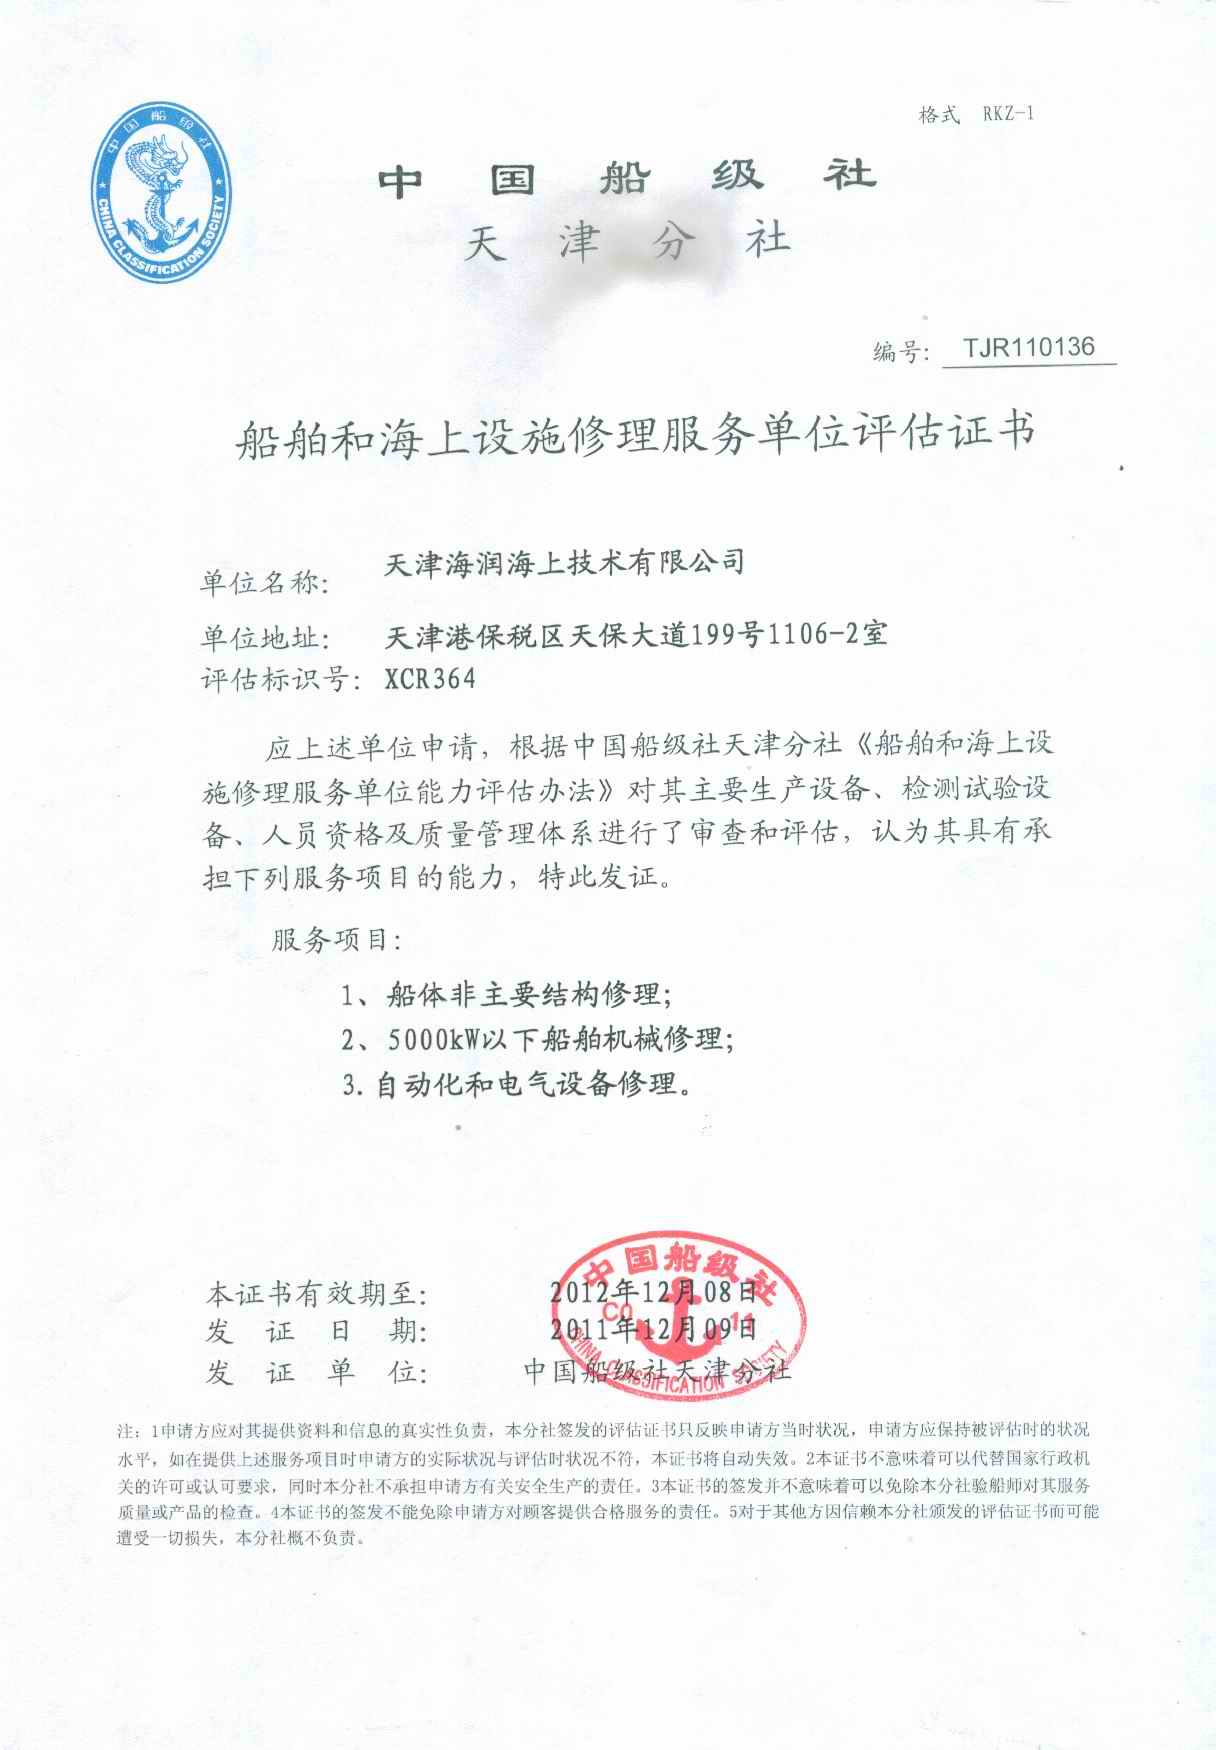 Qualification Certificate Guangzhou Hairun Shipping Technical Co Ltd